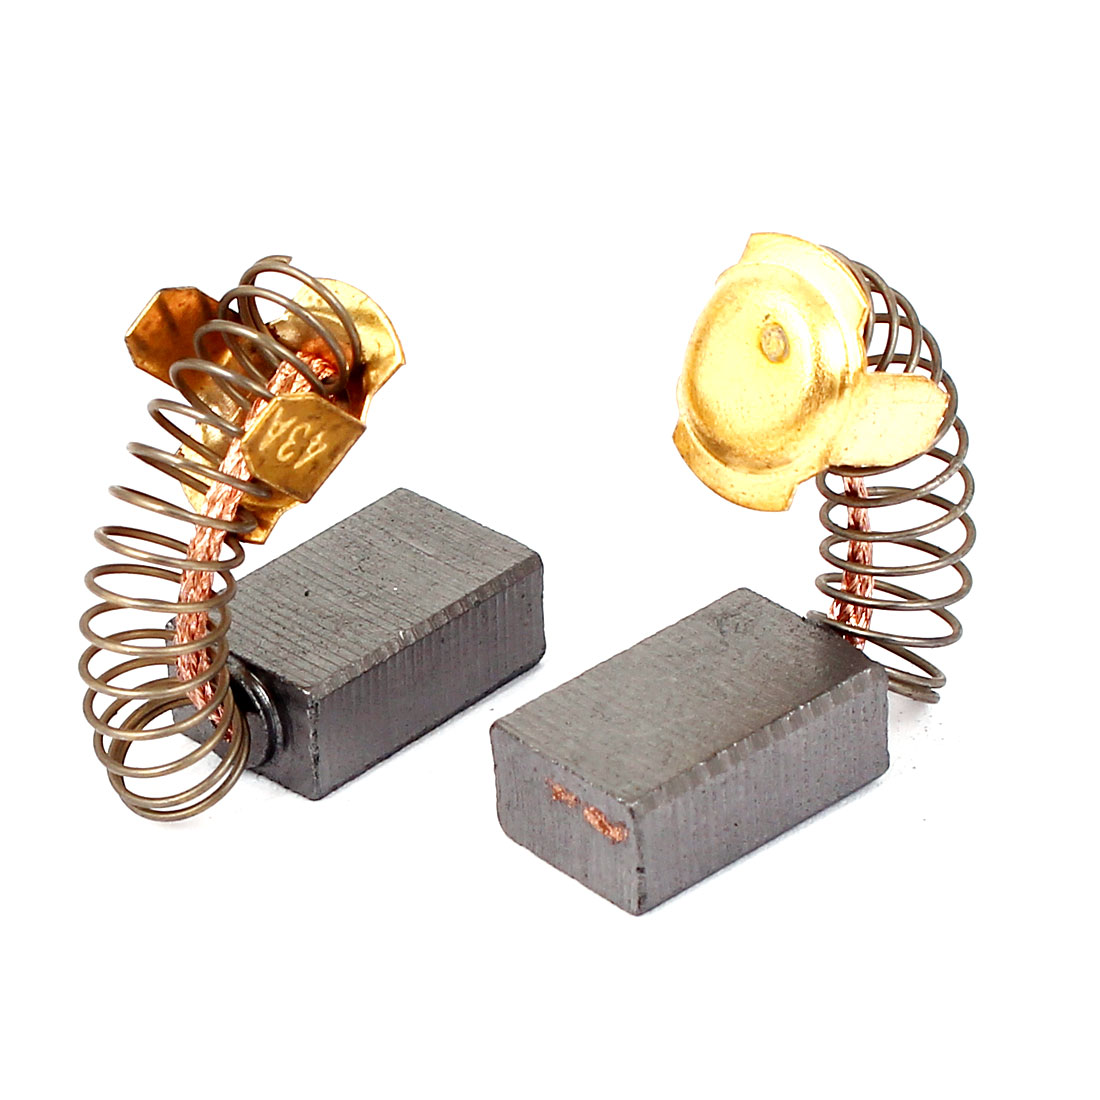 2 Pcs Replacement Motor Carbon Brushes 17mm x 11mm x 7mm for Electric Motors